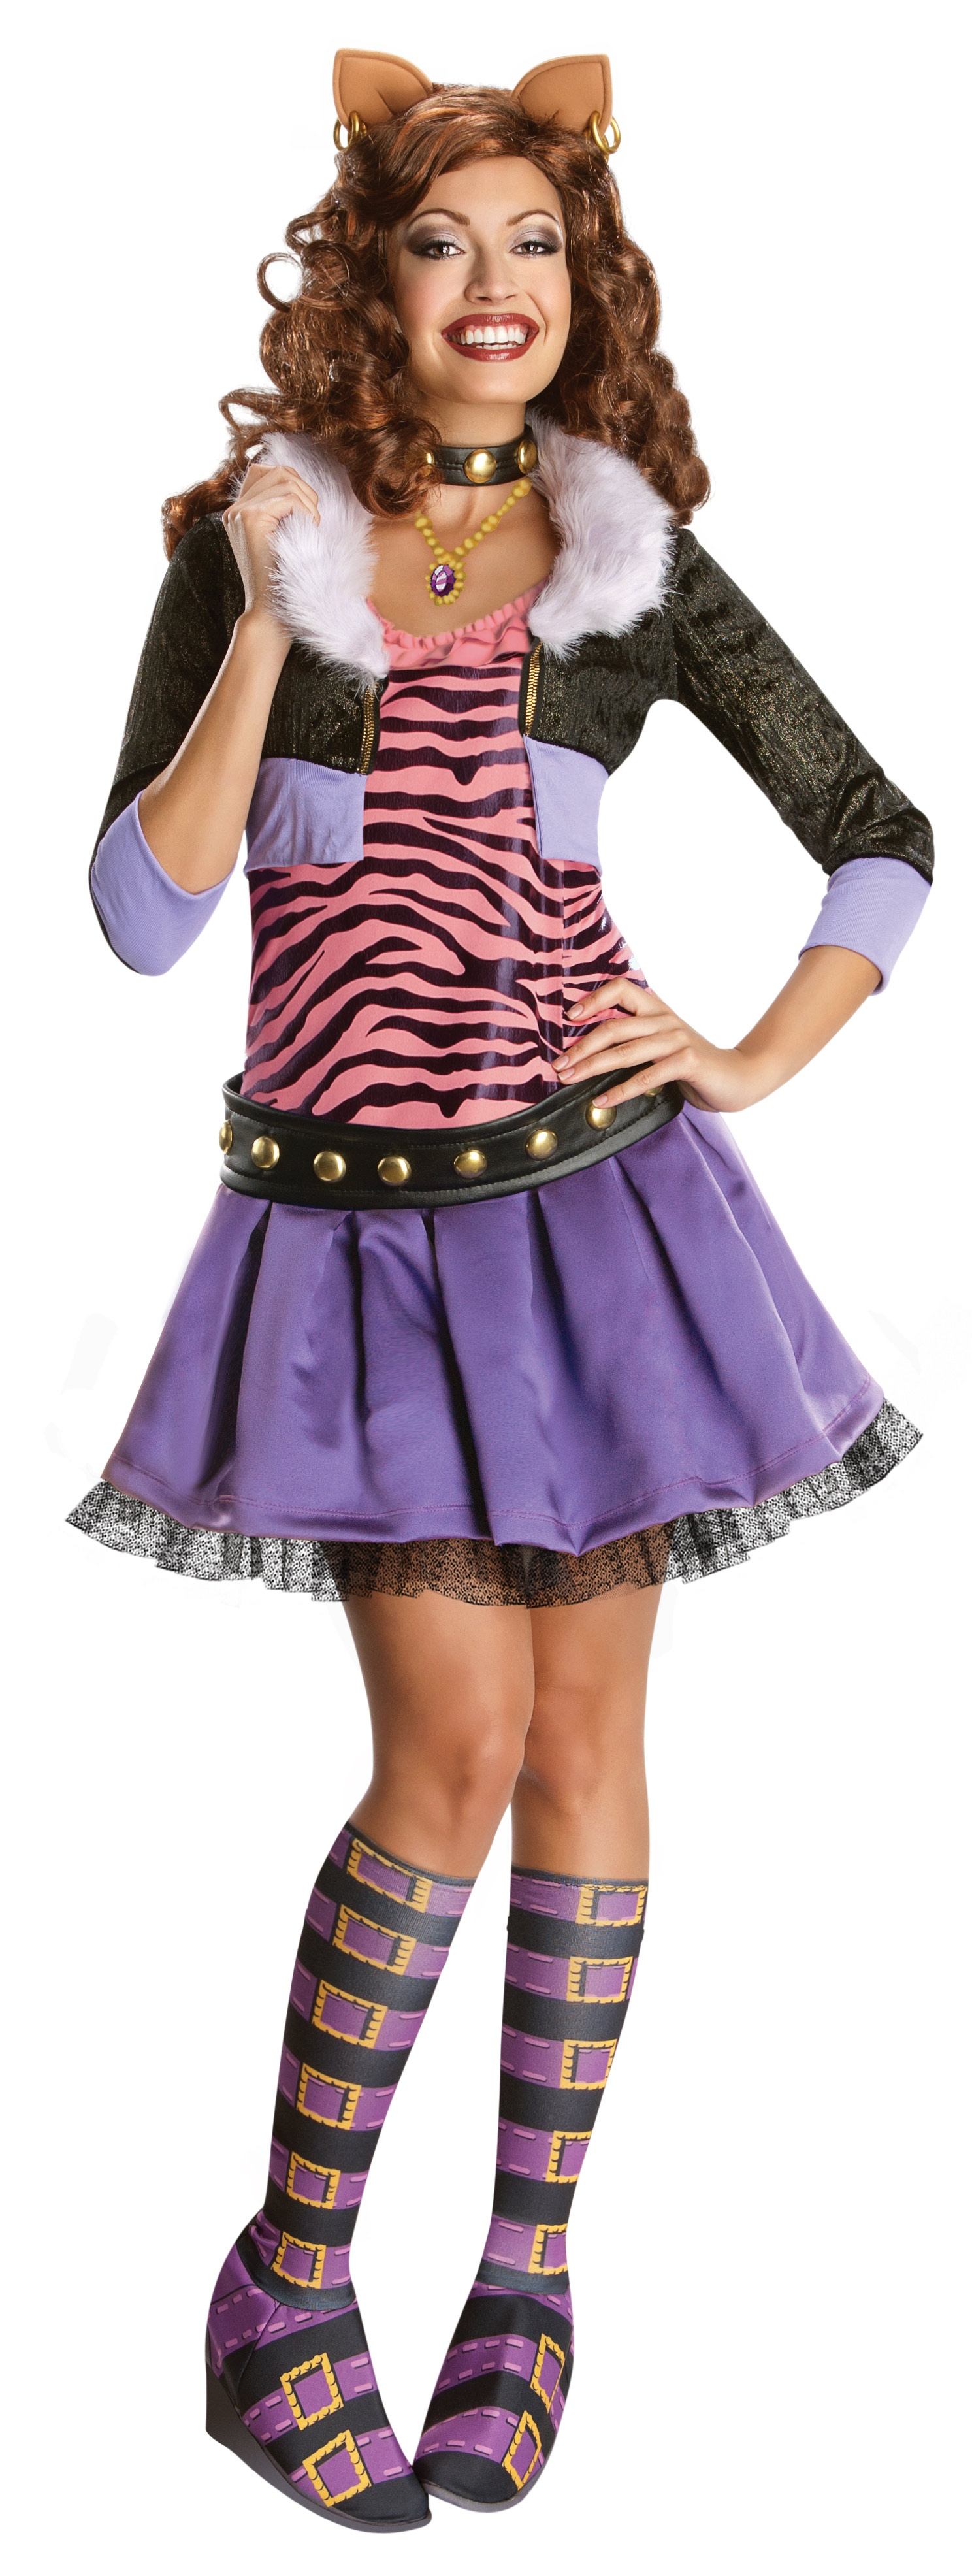 clawdeen wolf outfit